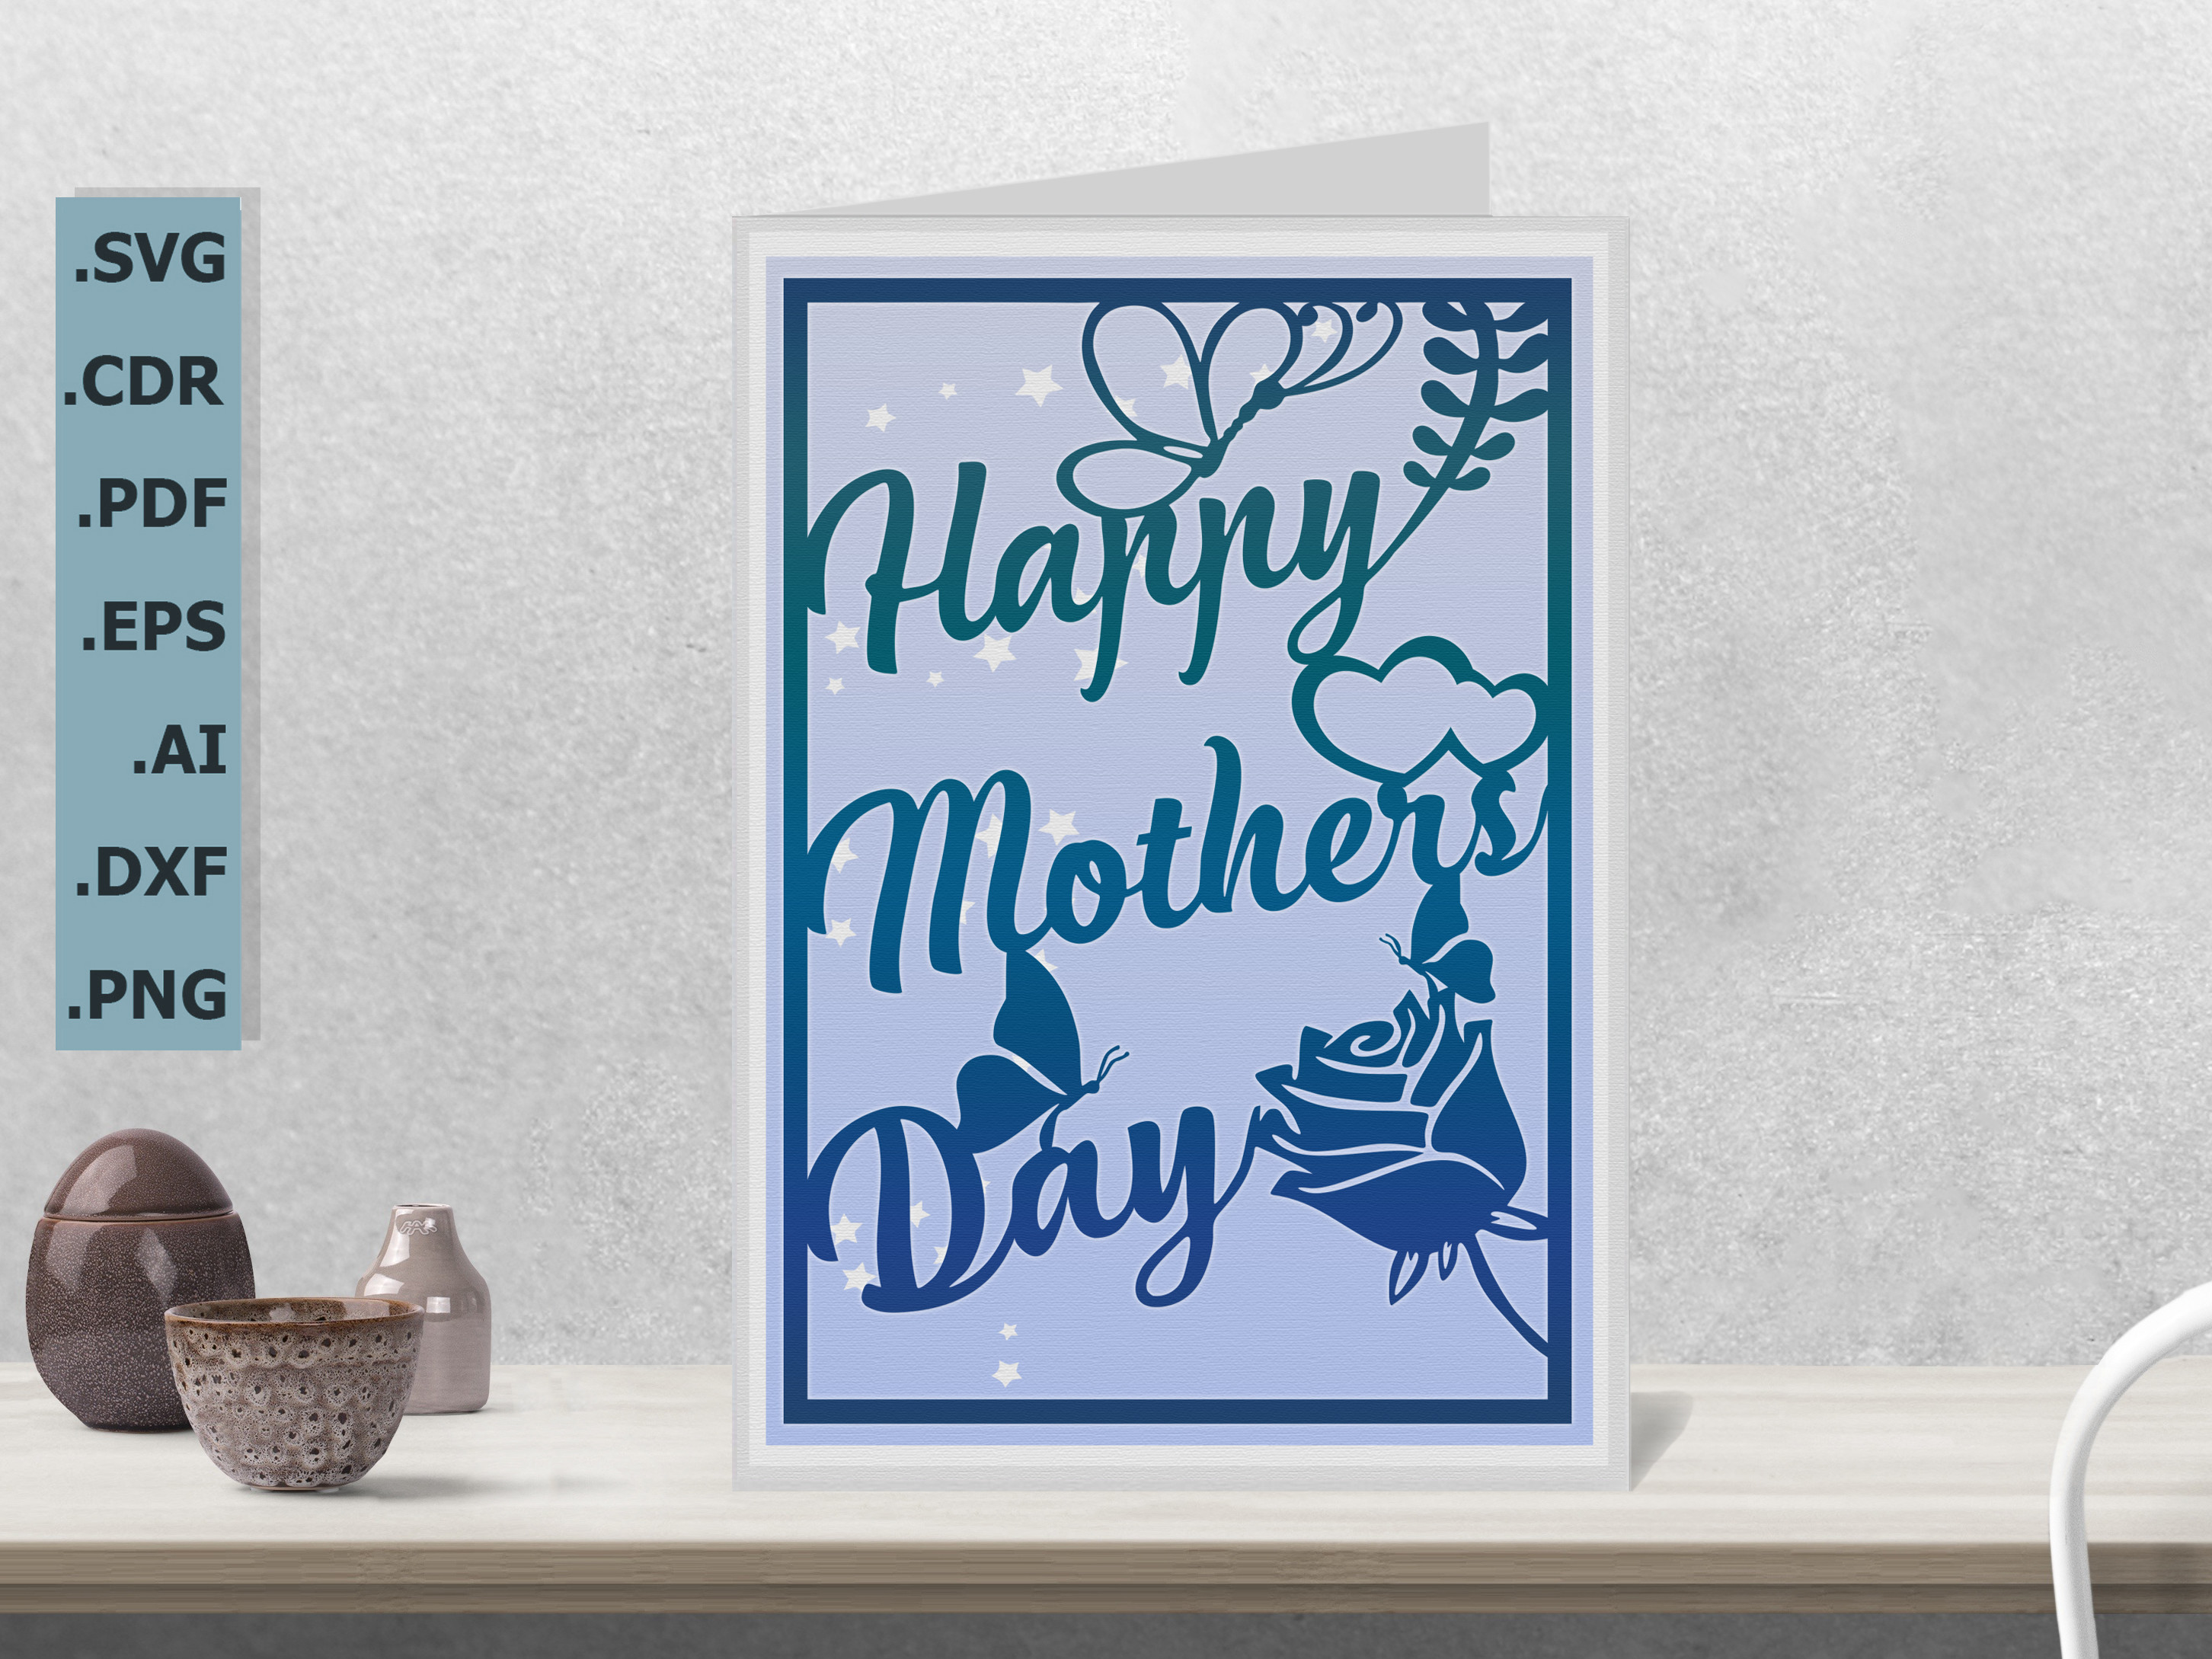 Happy Mother's Day Card SVG & 3... SVG File